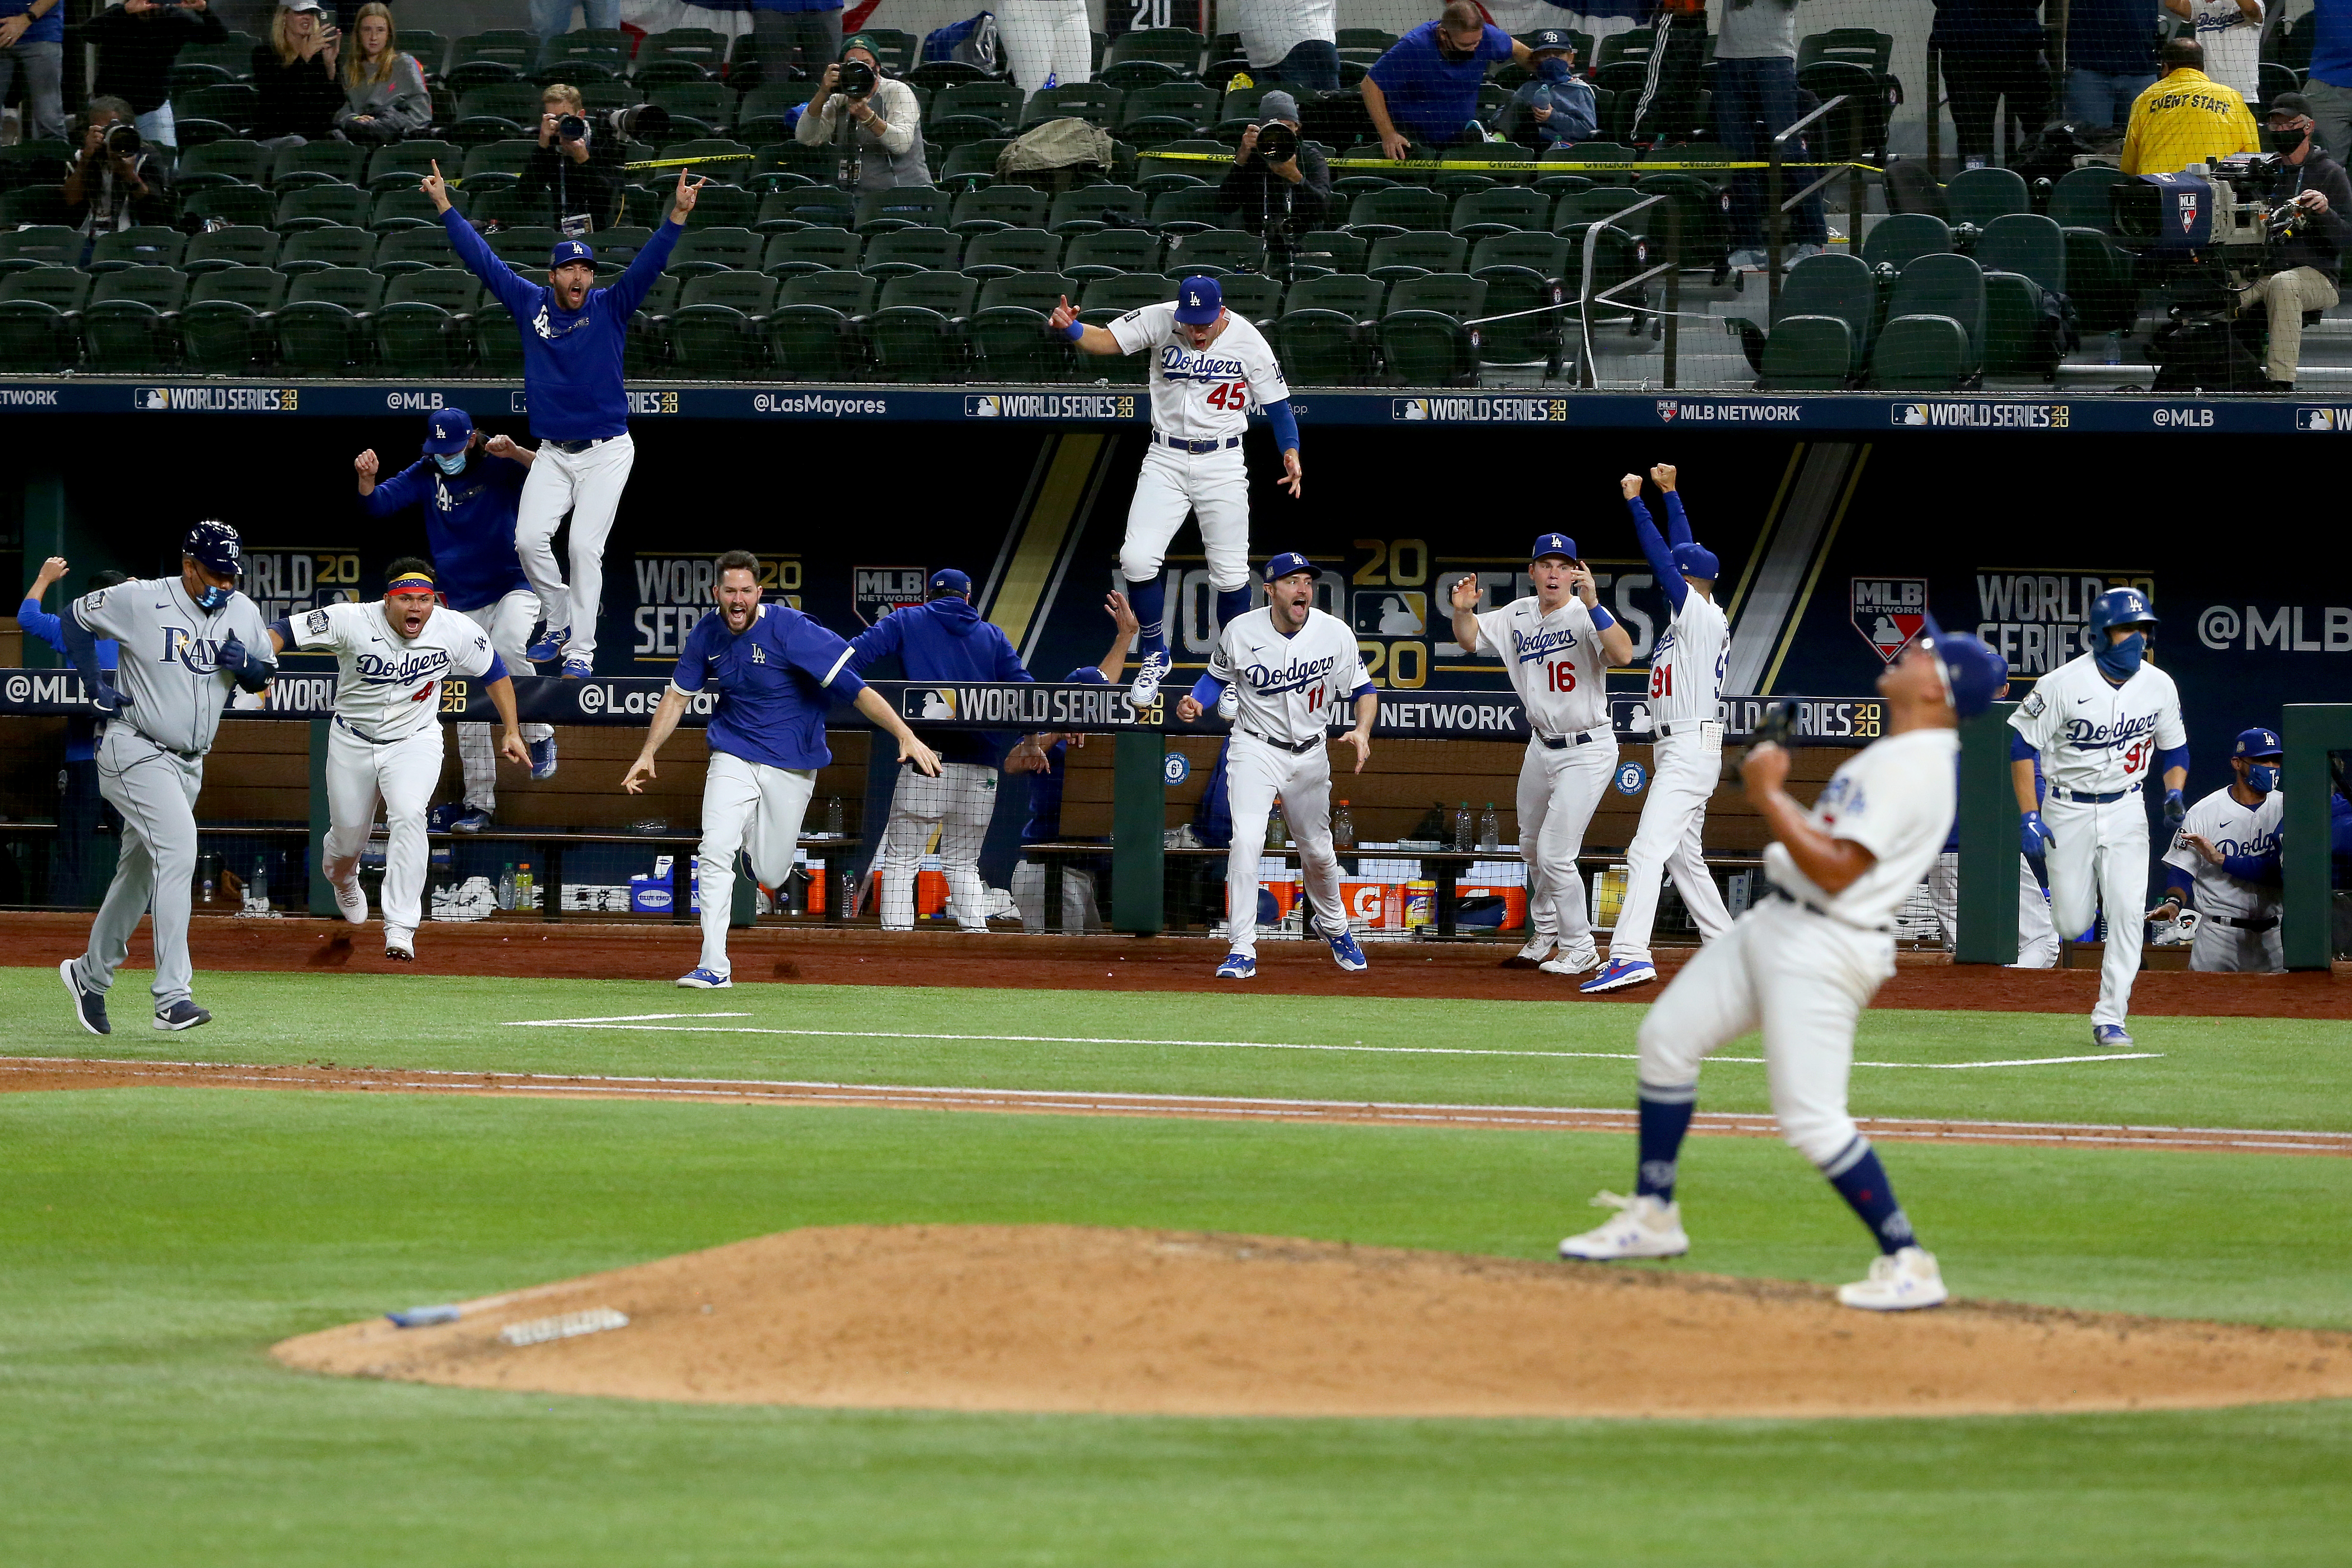 The Dodgers are the odds on favorite to win the World Series again in 2021. (Photo by Tom Pennington/Getty Images)